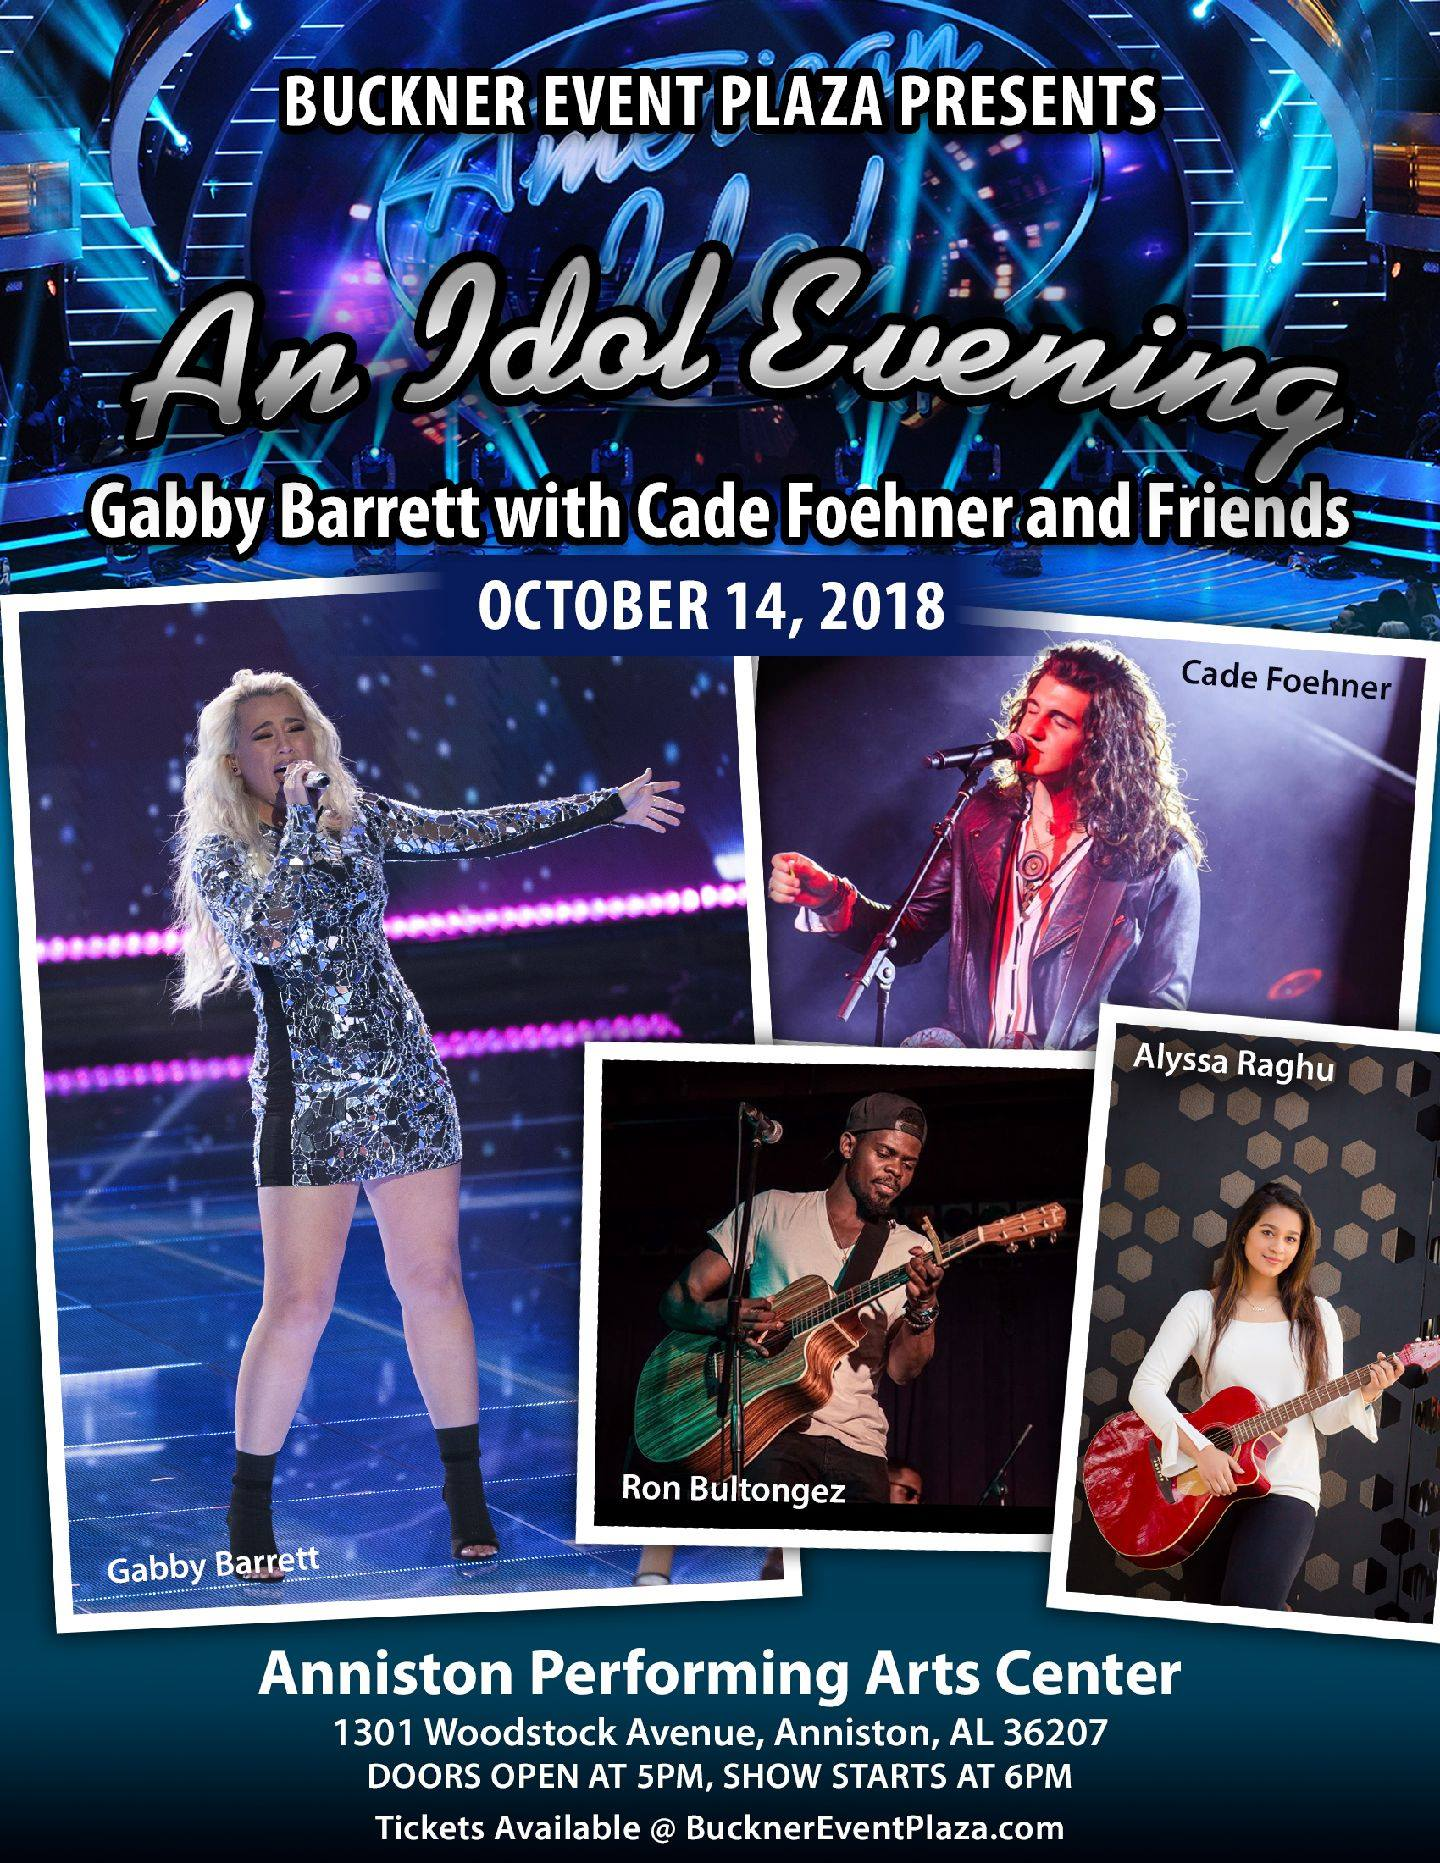 An Idol Evening...Gabby Barrett with Cade Foehner and Friends - Anniston Performing Arts Center - Anniston, AL - October 14, 2018